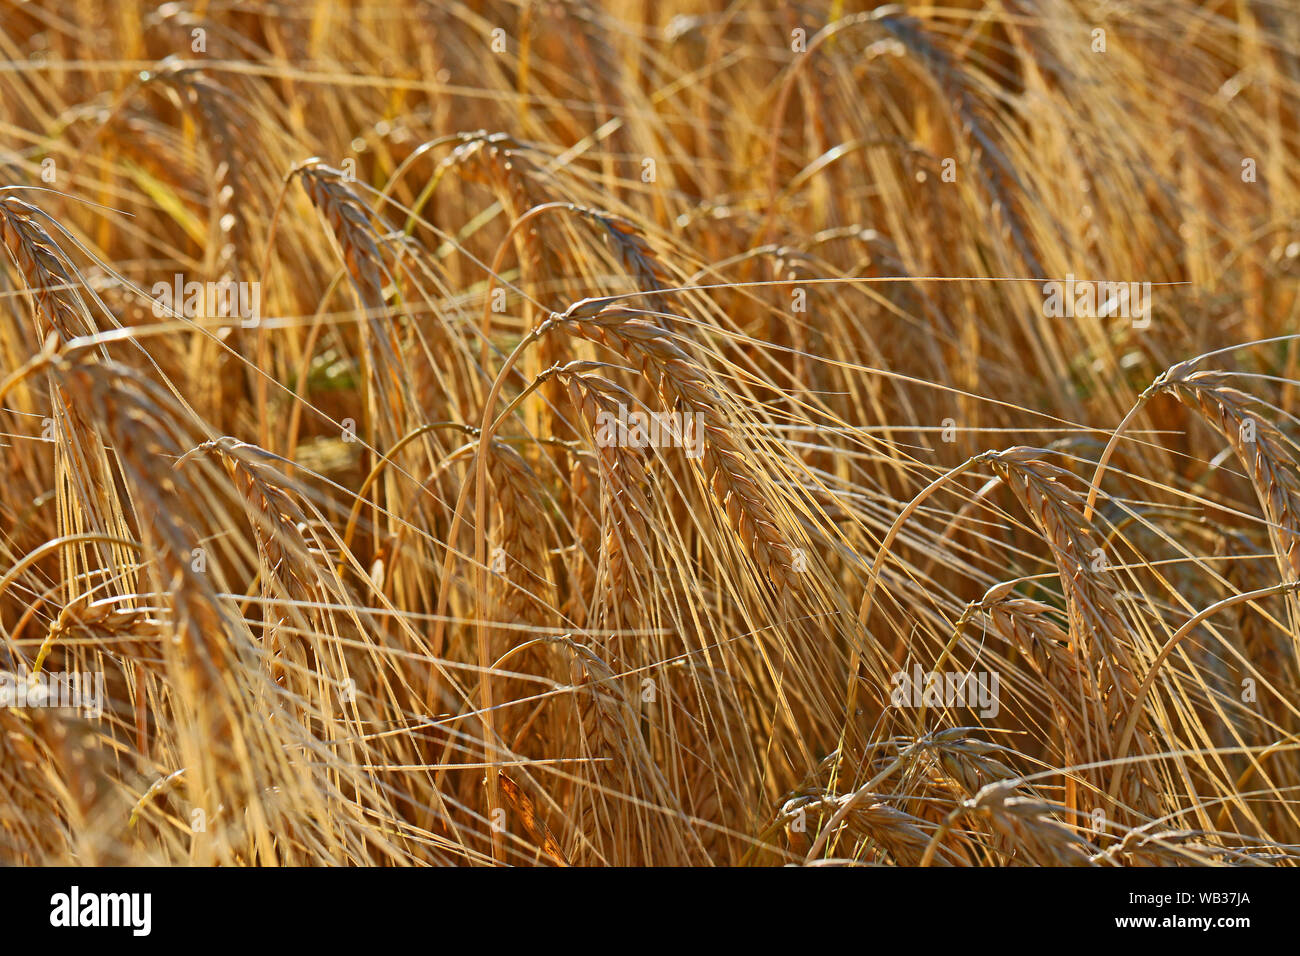 ears of barley Latin hordeum vulgare growing in early summer in a field in Italy Stock Photo